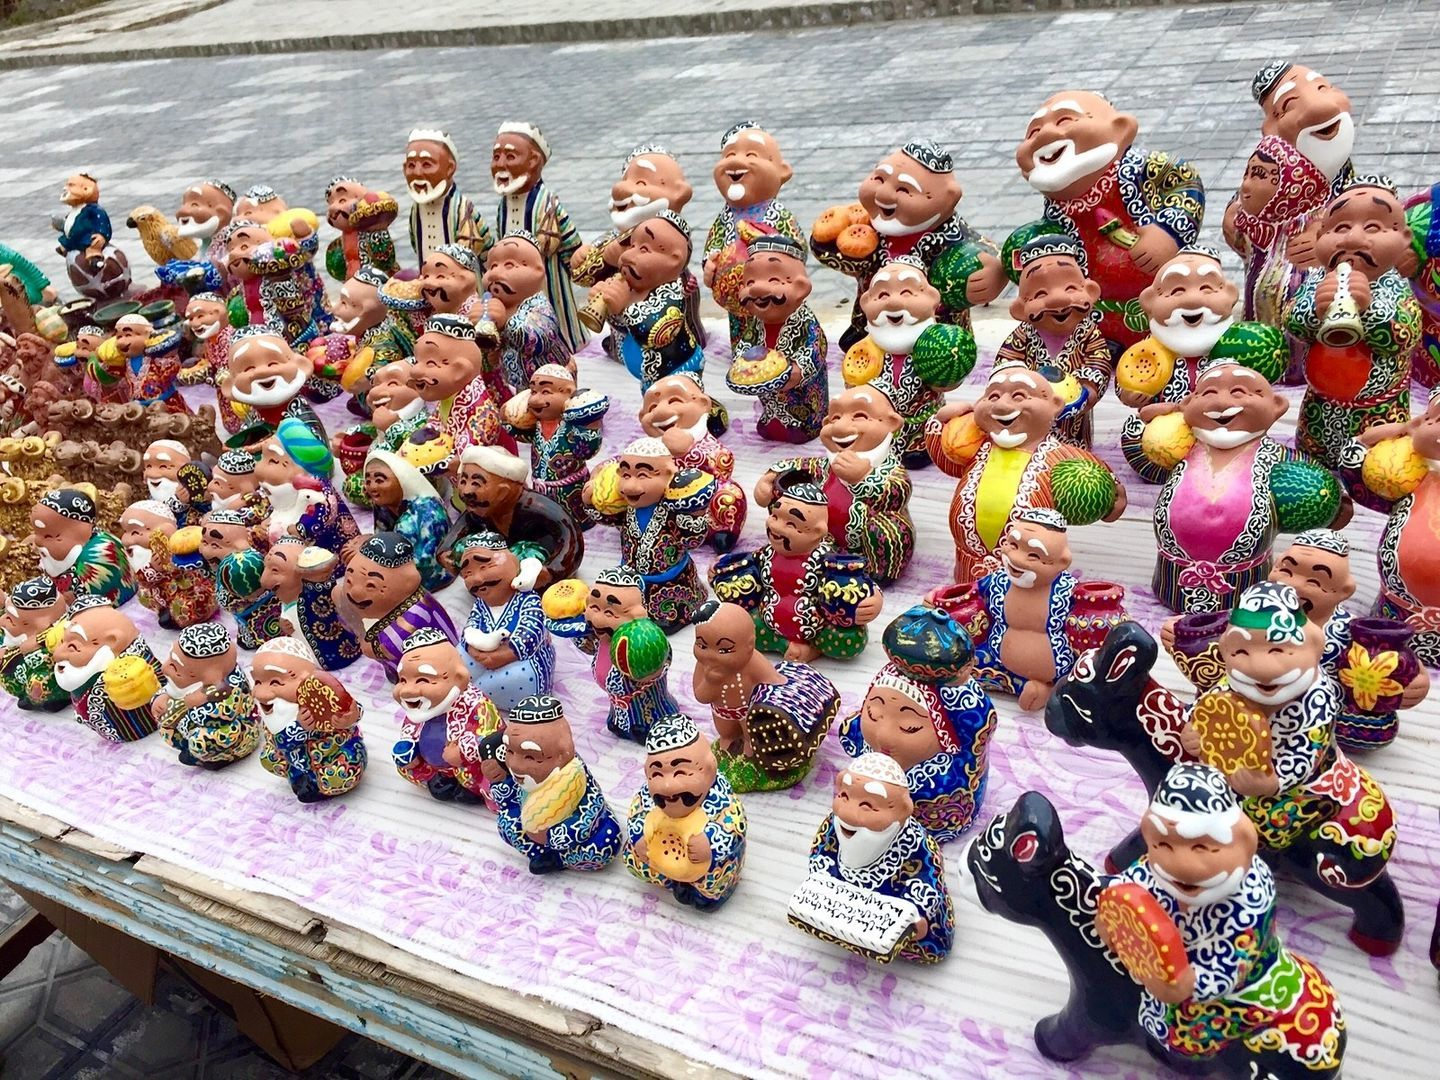 souvenirs of colorful Uzbek statues during Central Asia Tour